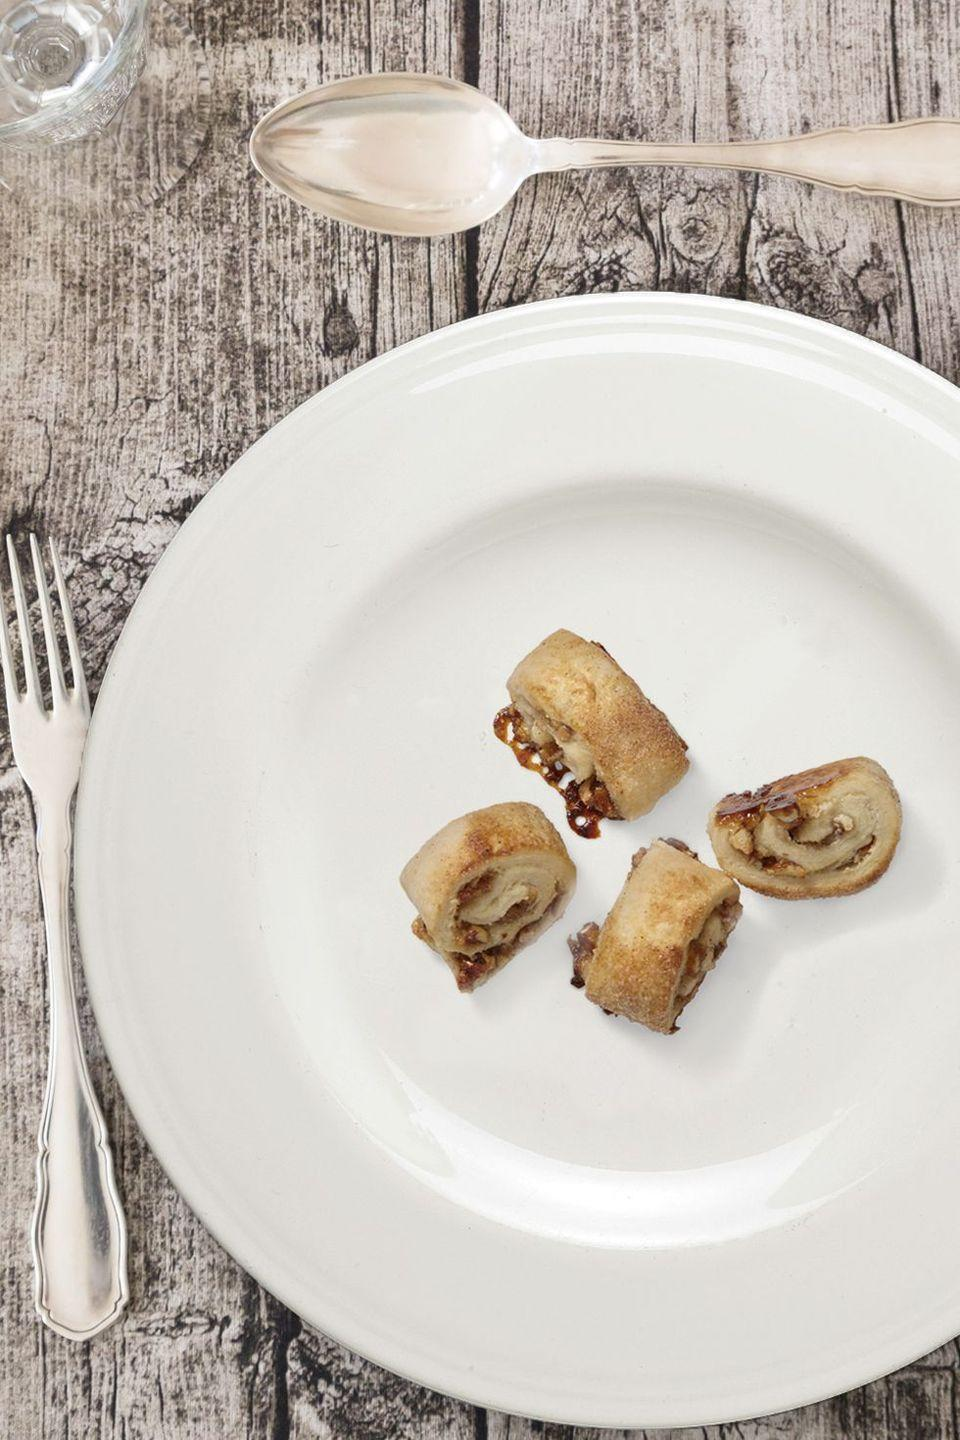 "<p>Another highly traditional Jewish baked good, rugelach is a slam-dunk comfort food crowd pleaser. Sometimes made with chocolate, fruits, or nuts, this cinnamon version calls for pecans and apricot preserves.</p><p><em><a href=""https://www.goodhousekeeping.com/food-recipes/dessert/a46638/pecan-apricot-rugelach-recipe/"" rel=""nofollow noopener"" target=""_blank"" data-ylk=""slk:Get the recipe for pecan apricot rugelach"" class=""link rapid-noclick-resp"">Get the recipe for pecan apricot rugelach </a></em></p>"